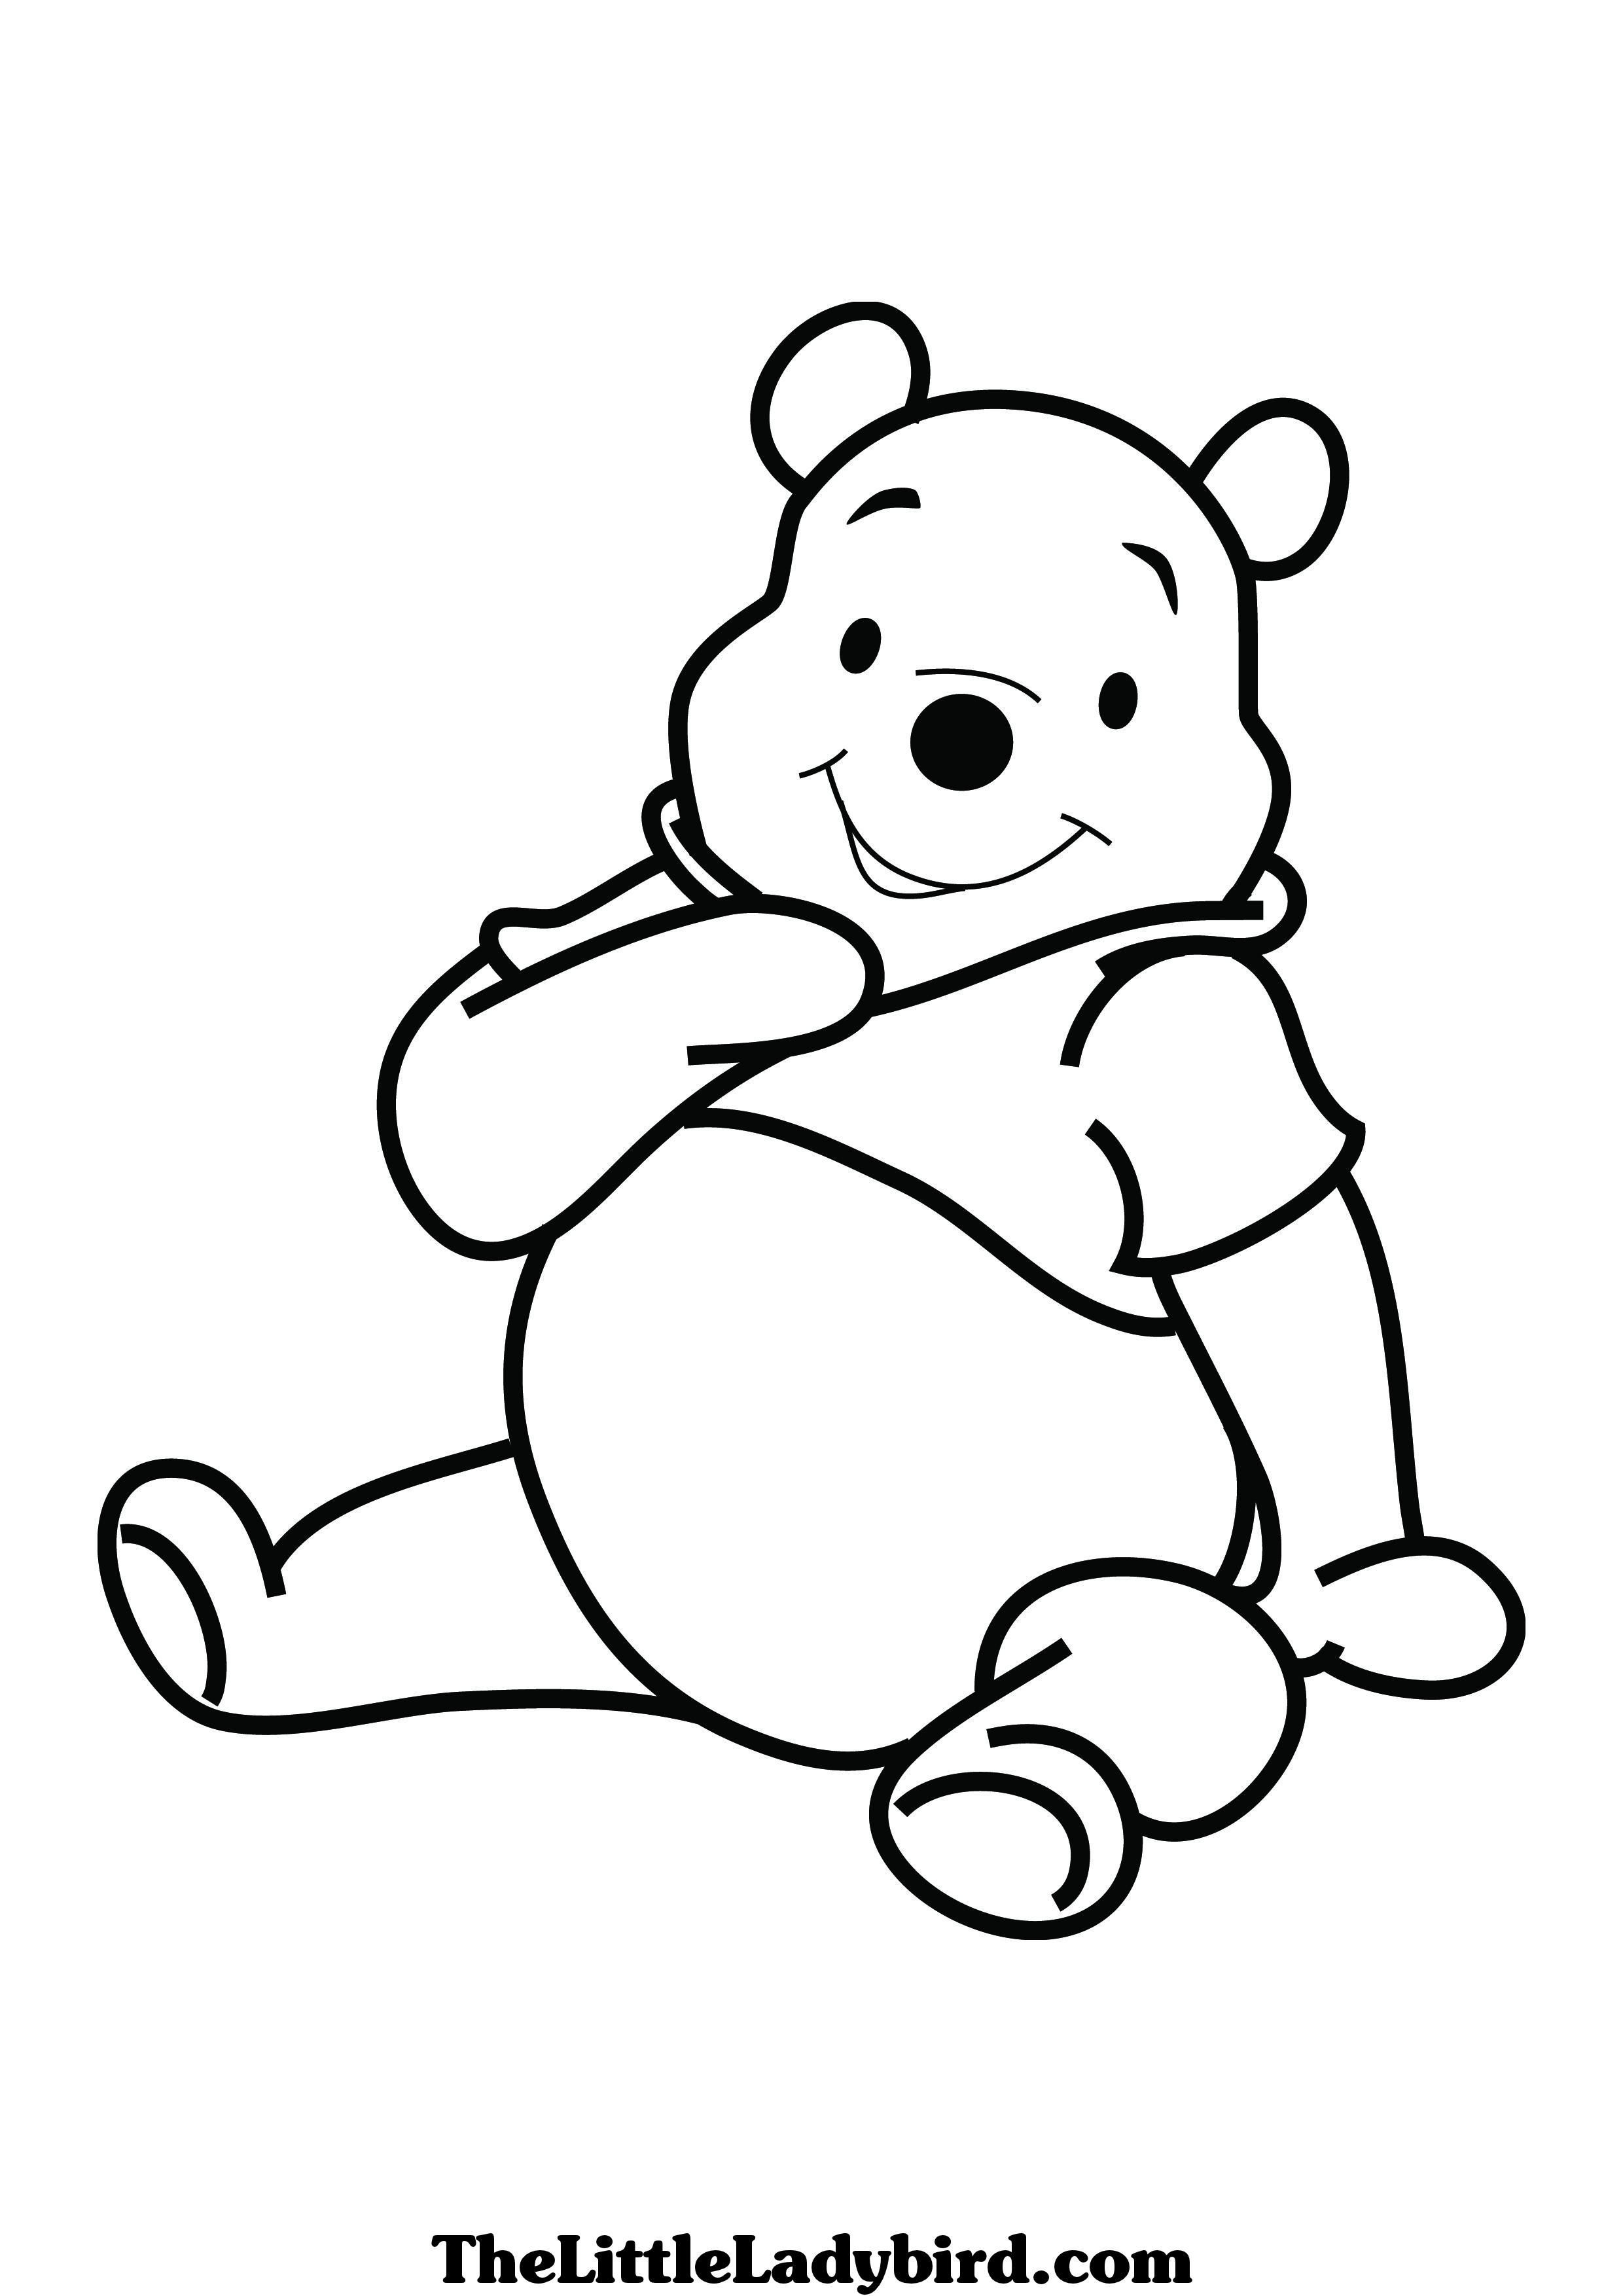 pooh bear coloring pictures pooh bear pictures free free download on clipartmag bear pooh pictures coloring